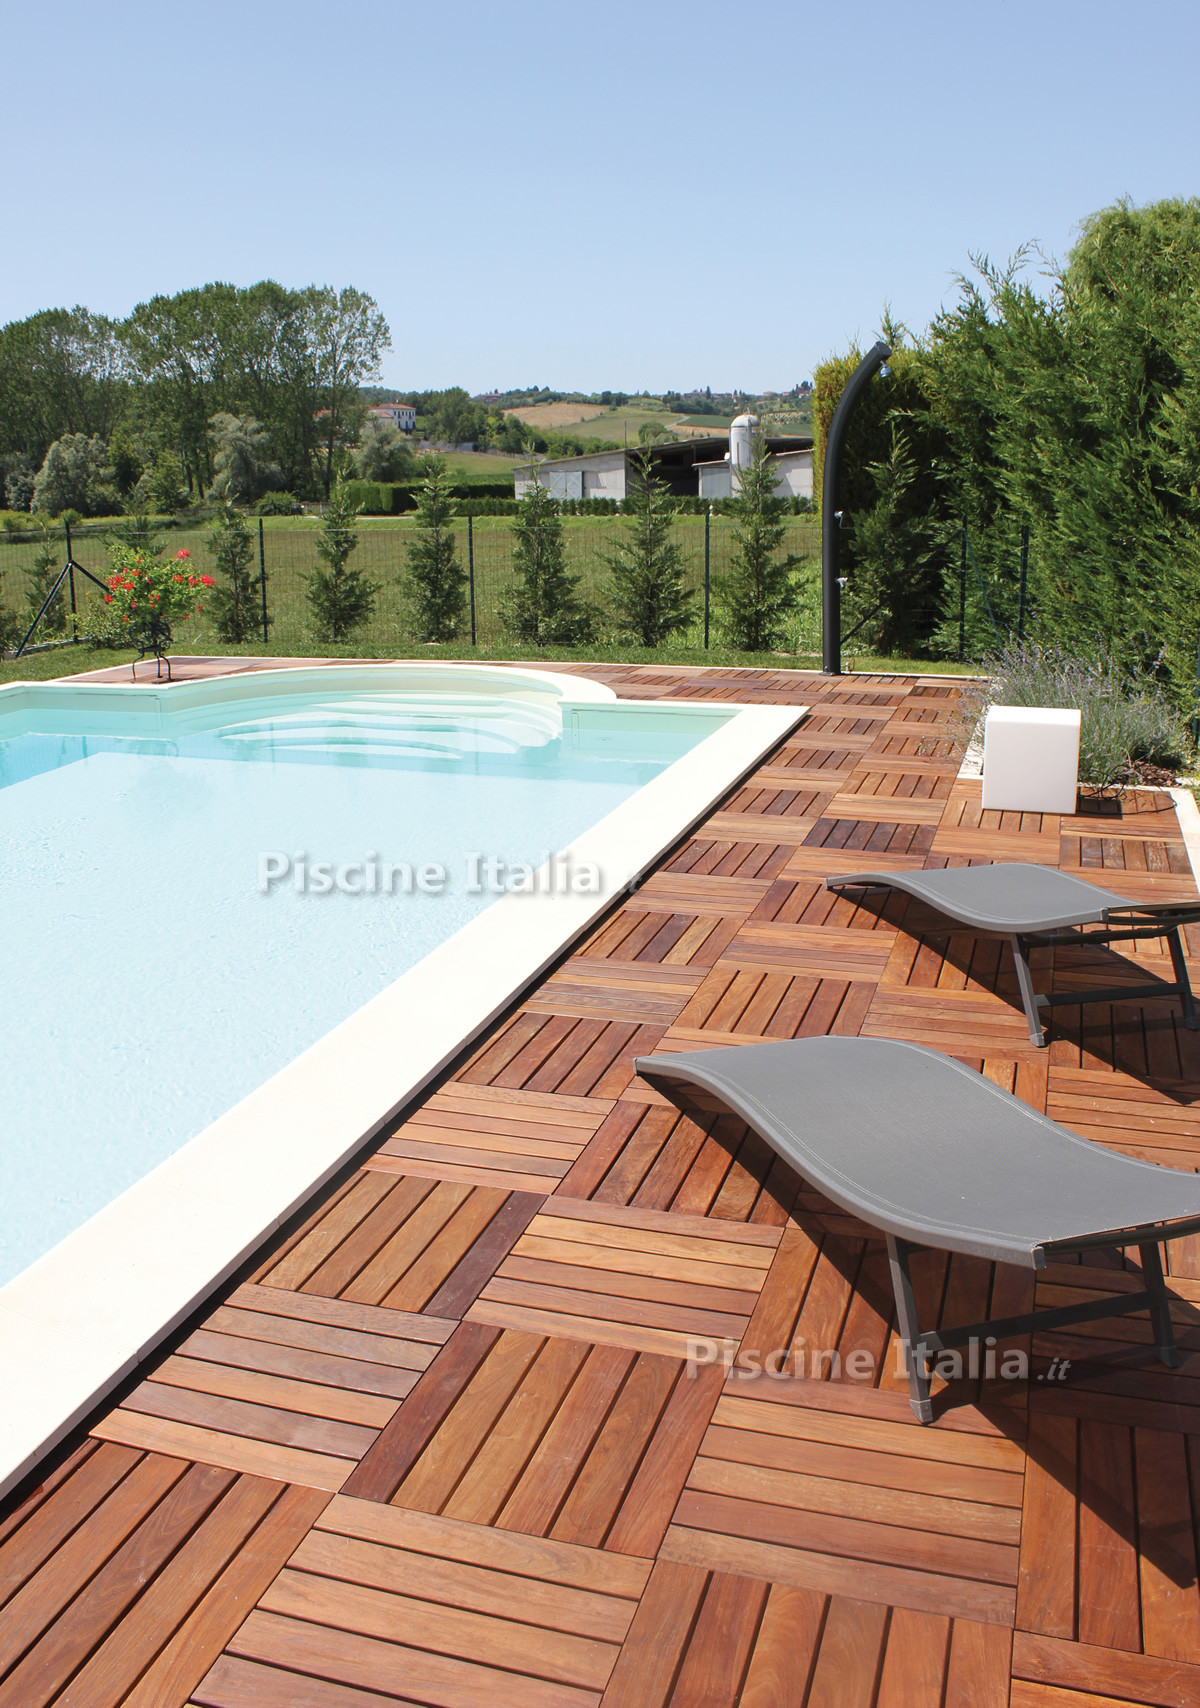 Piscine interrate in kit Futura - Immagine 7